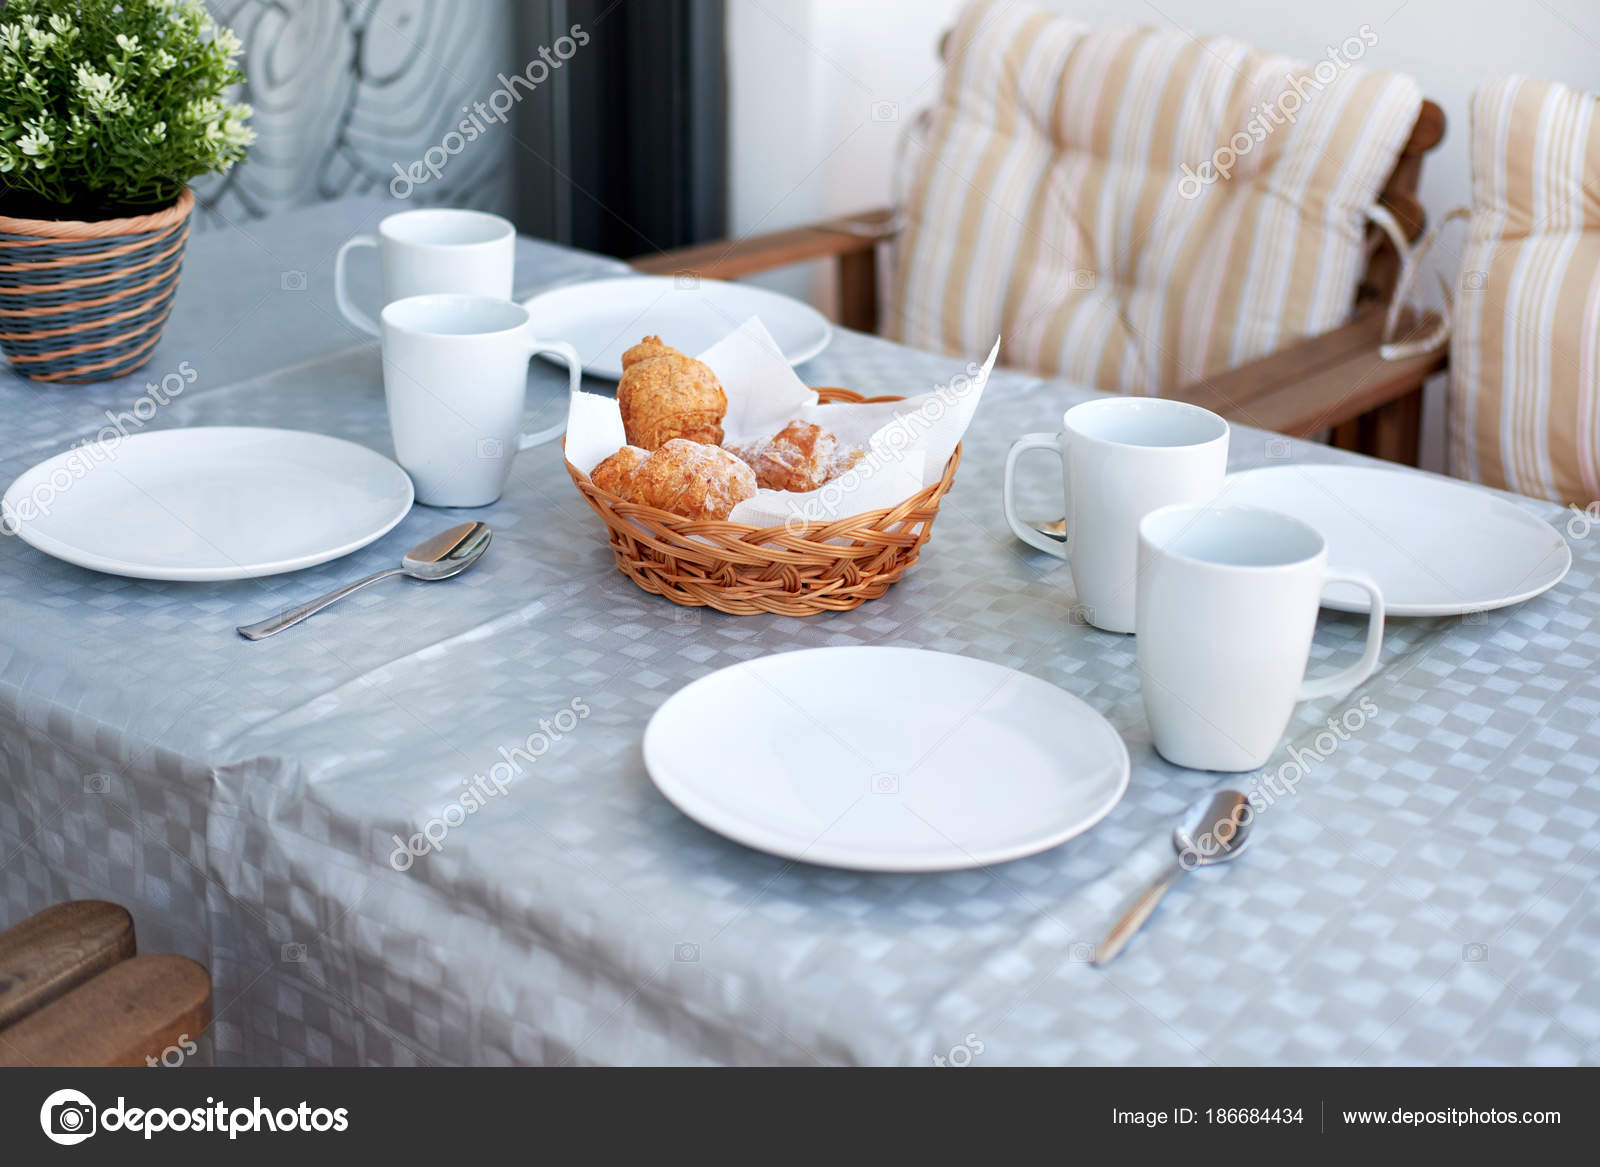 Table setting for breakfast u2014 Stock Photo & Table setting for breakfast u2014 Stock Photo © amoklv #186684434